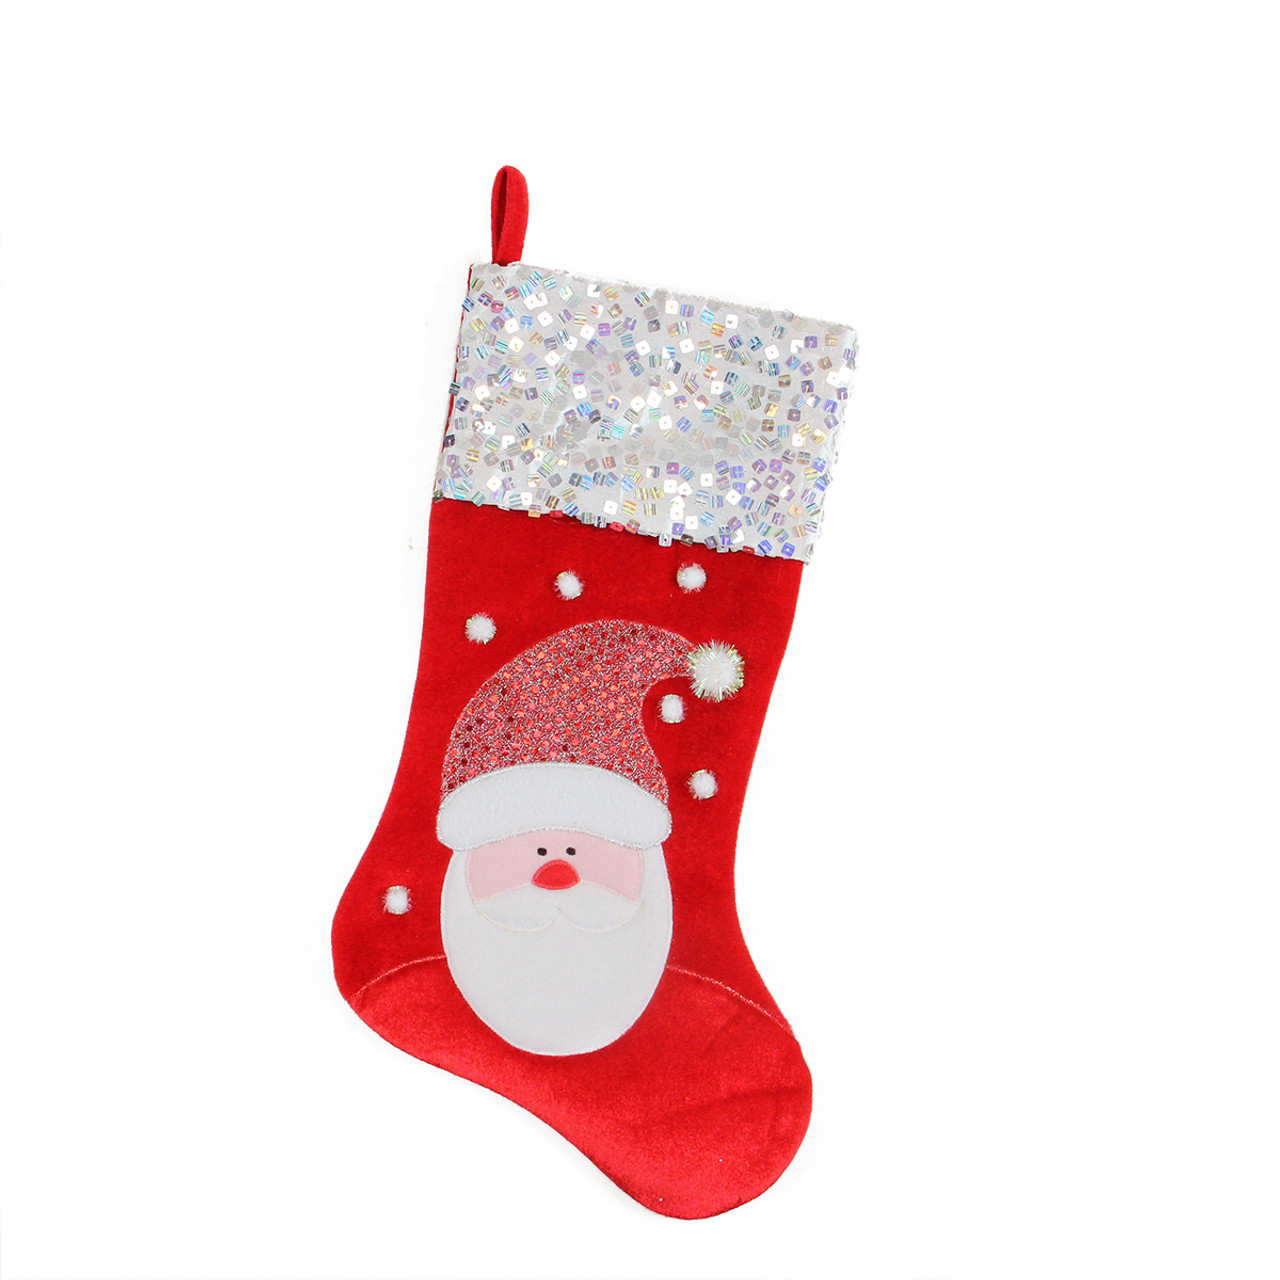 205 red and white santa claus embellished and embroidered christmas stocking with sequined cuff 32229650 - Red And White Christmas Stockings